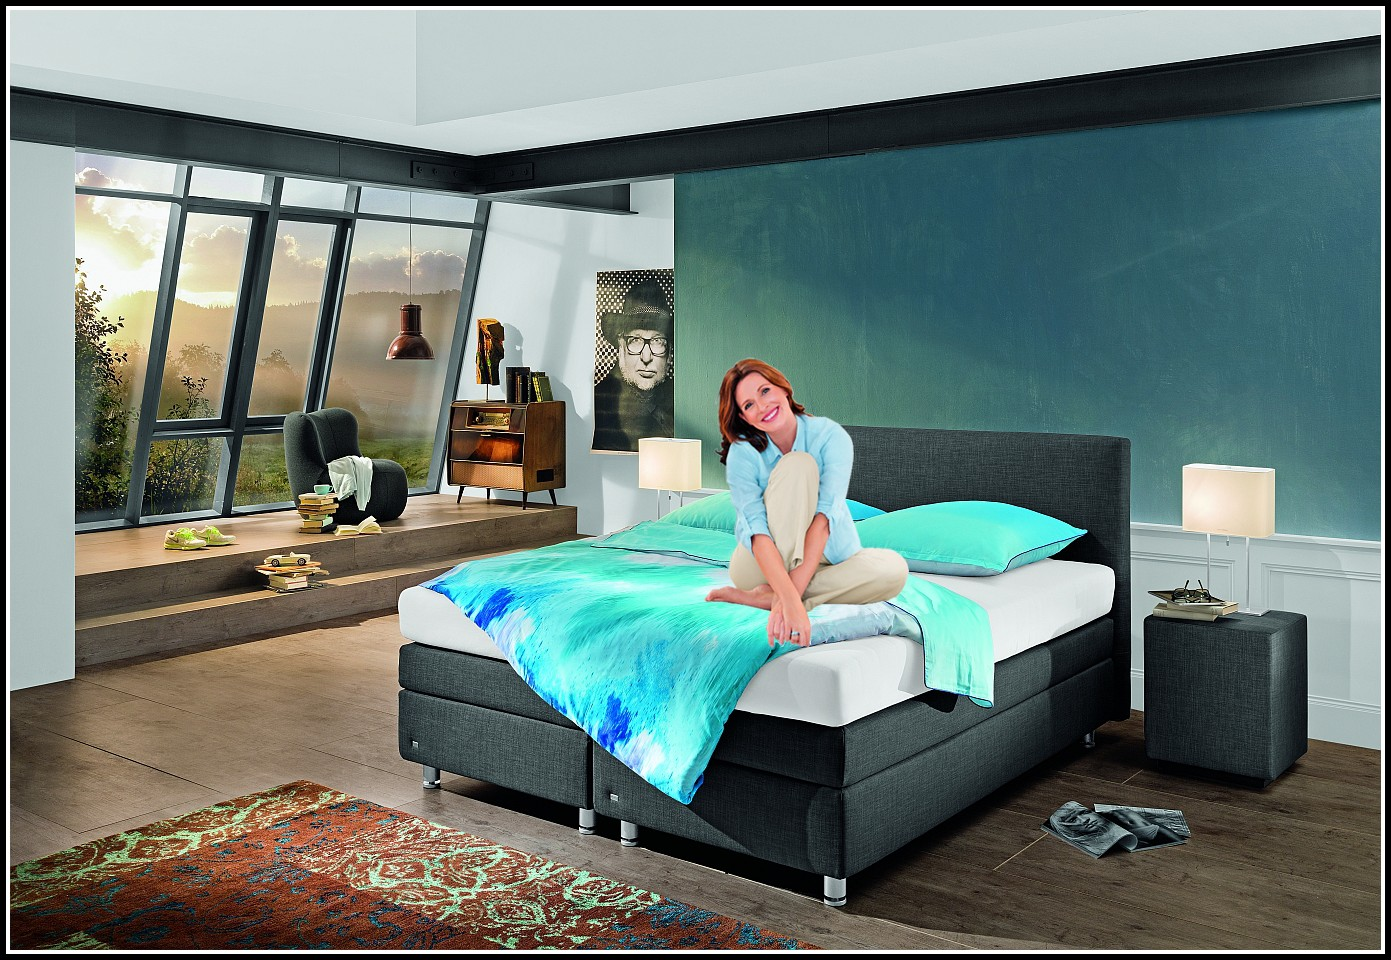 ruf betten boxspring verena betten house und dekor galerie gz10pex1yj. Black Bedroom Furniture Sets. Home Design Ideas